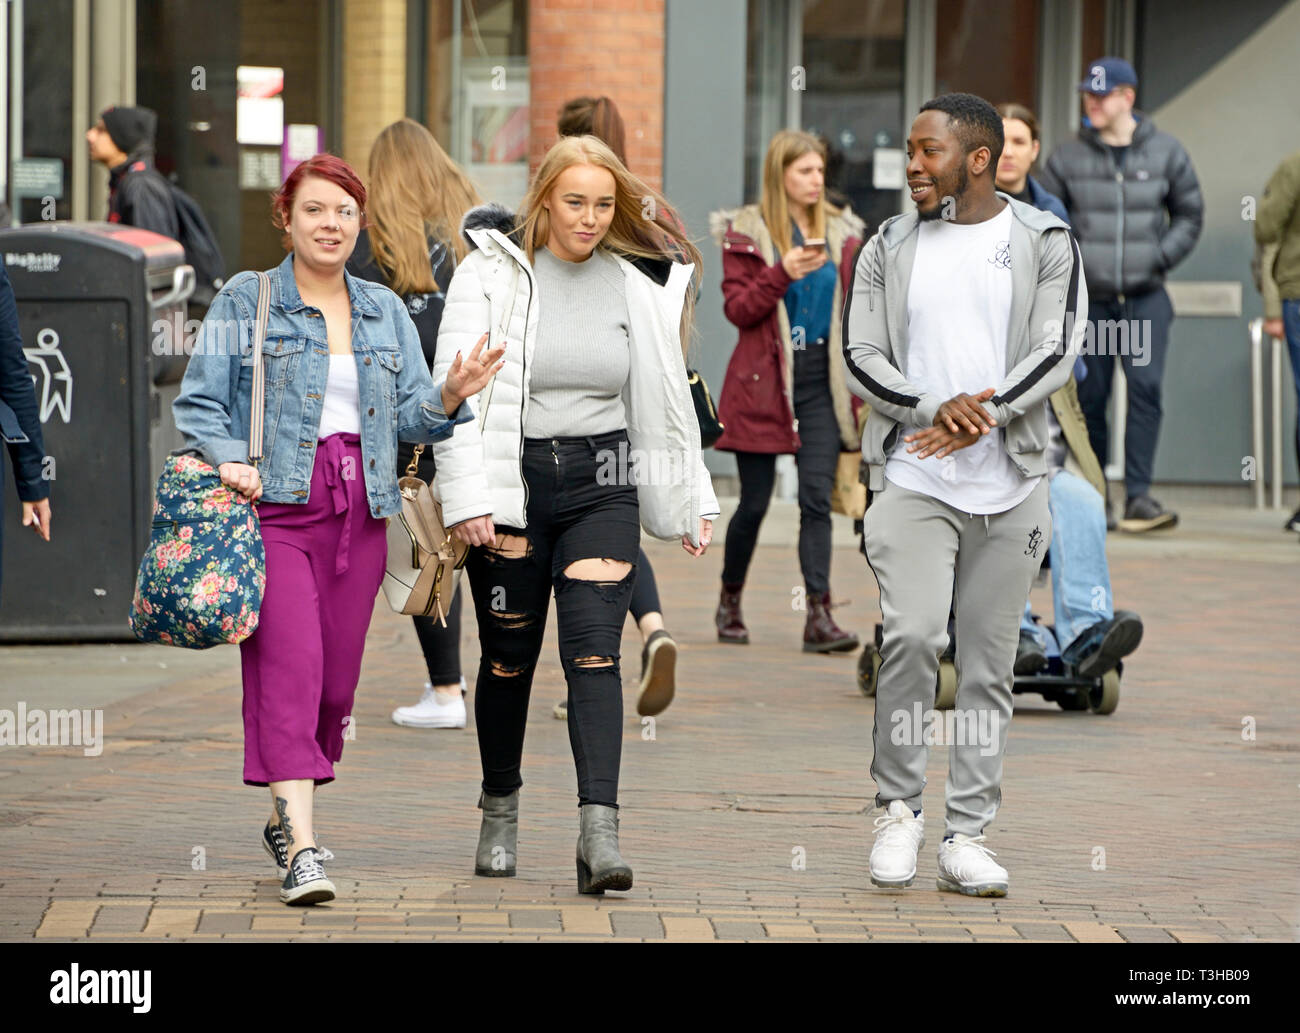 Black youth, walking with two white girls, talking. - Stock Image